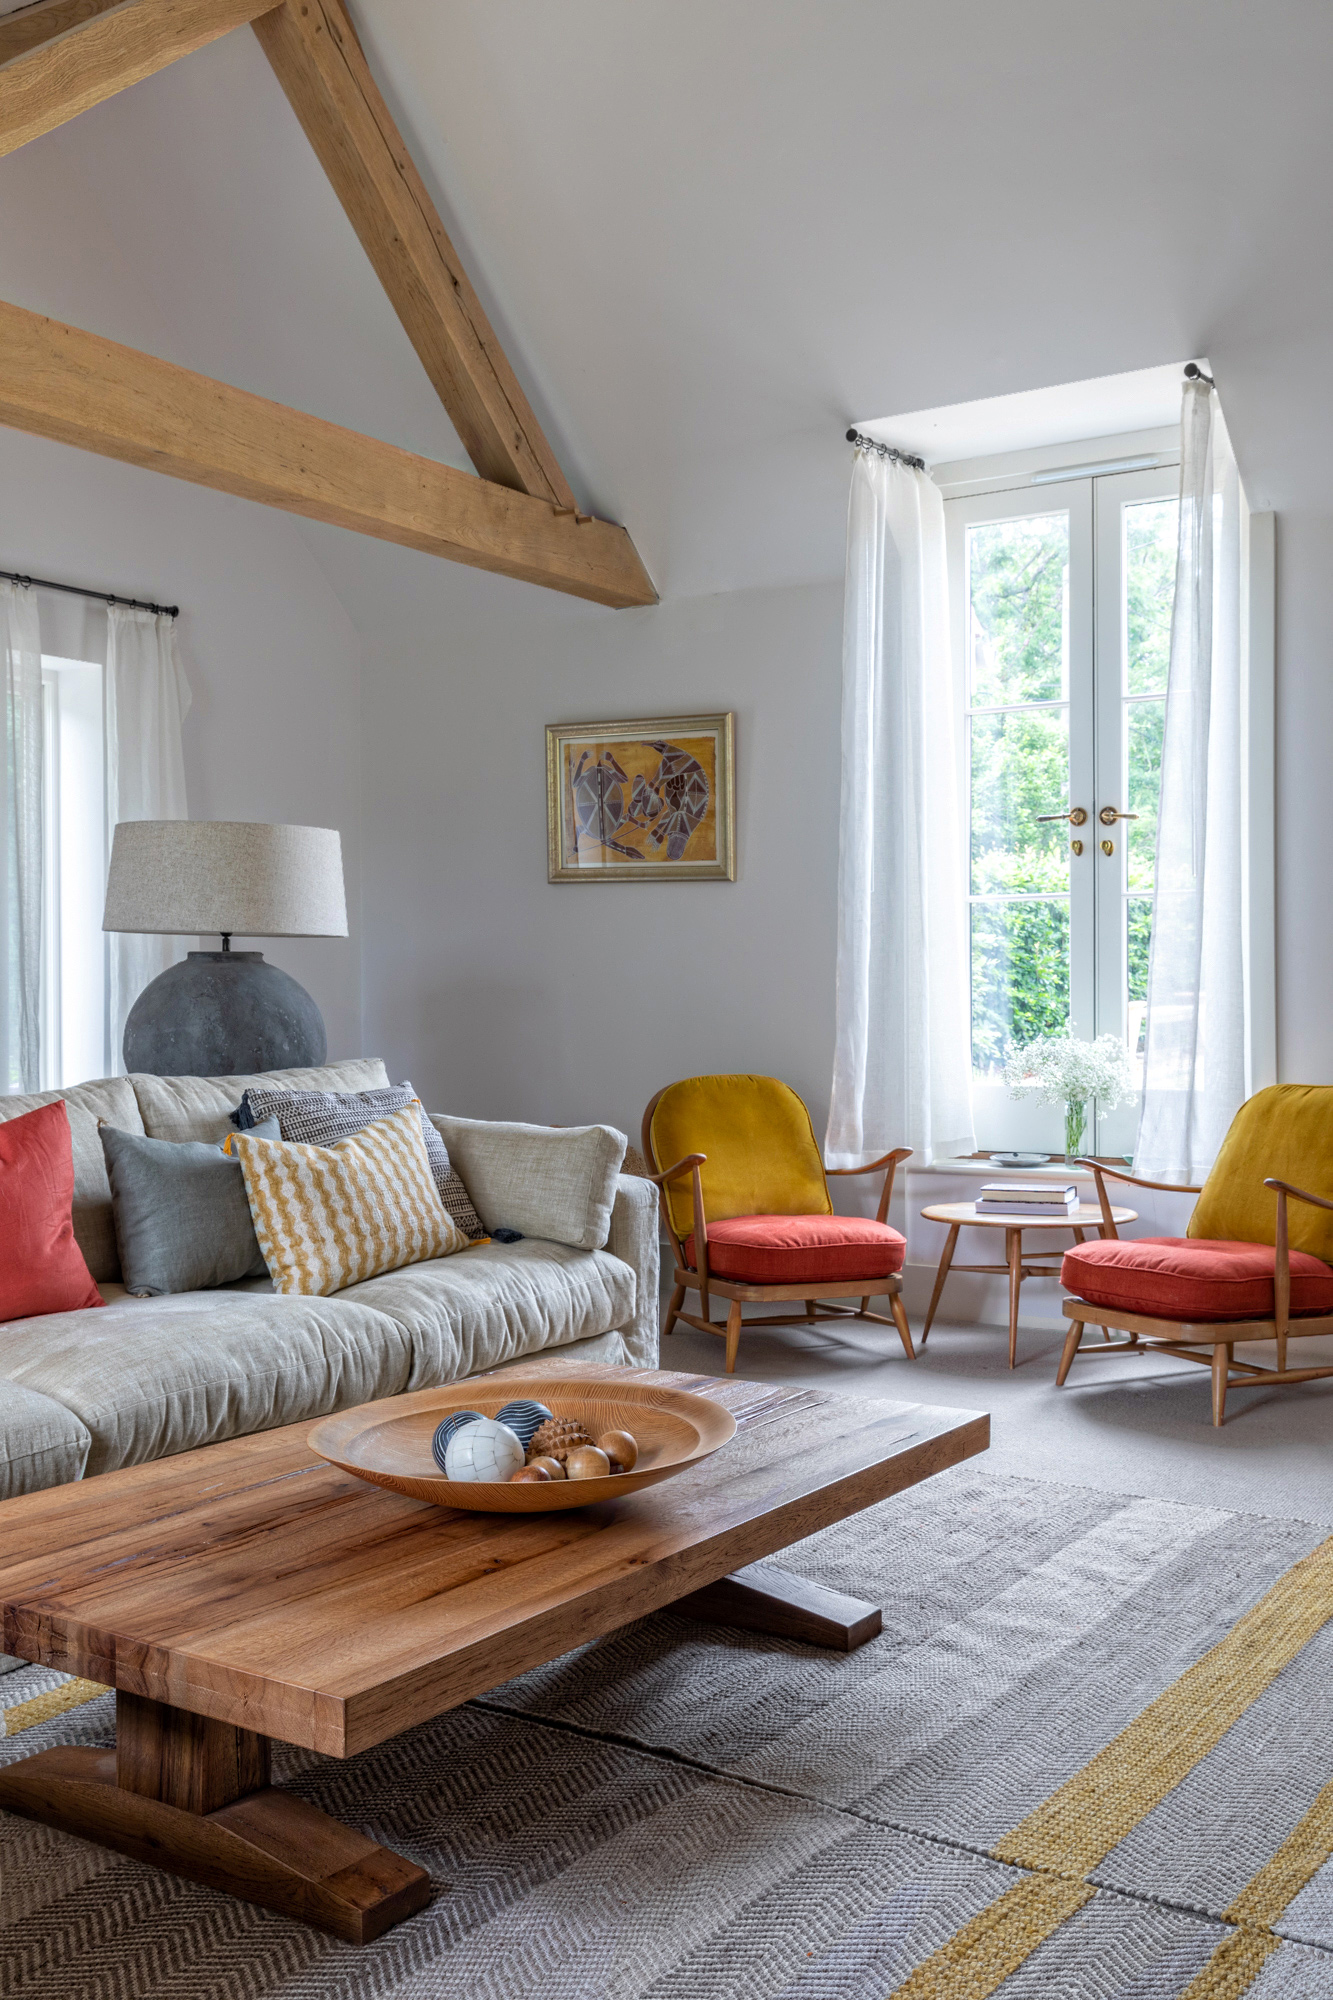 Interior design photo: two yellow and red armchairs in front of the window in a farm house; grey sofa and wooden coffee table